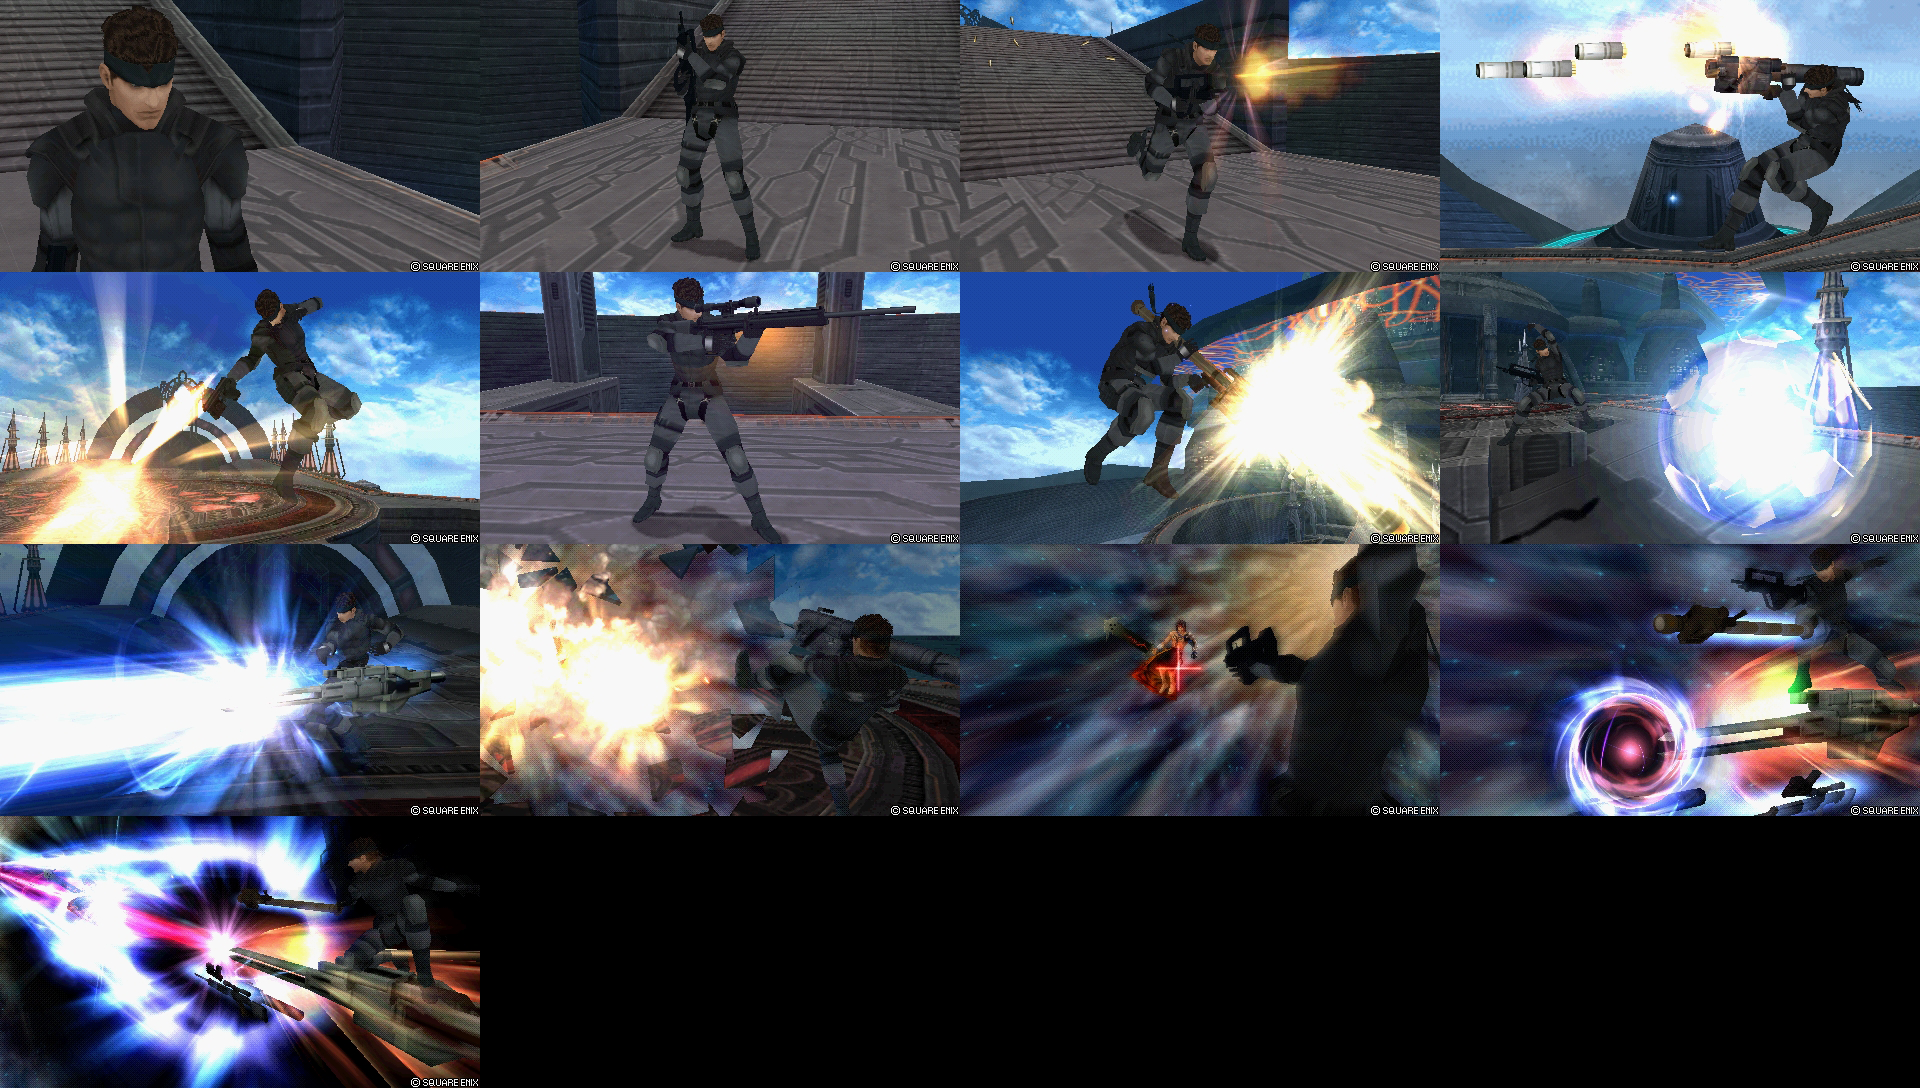 dissidia_012_mods__solid_snake_by_satosh